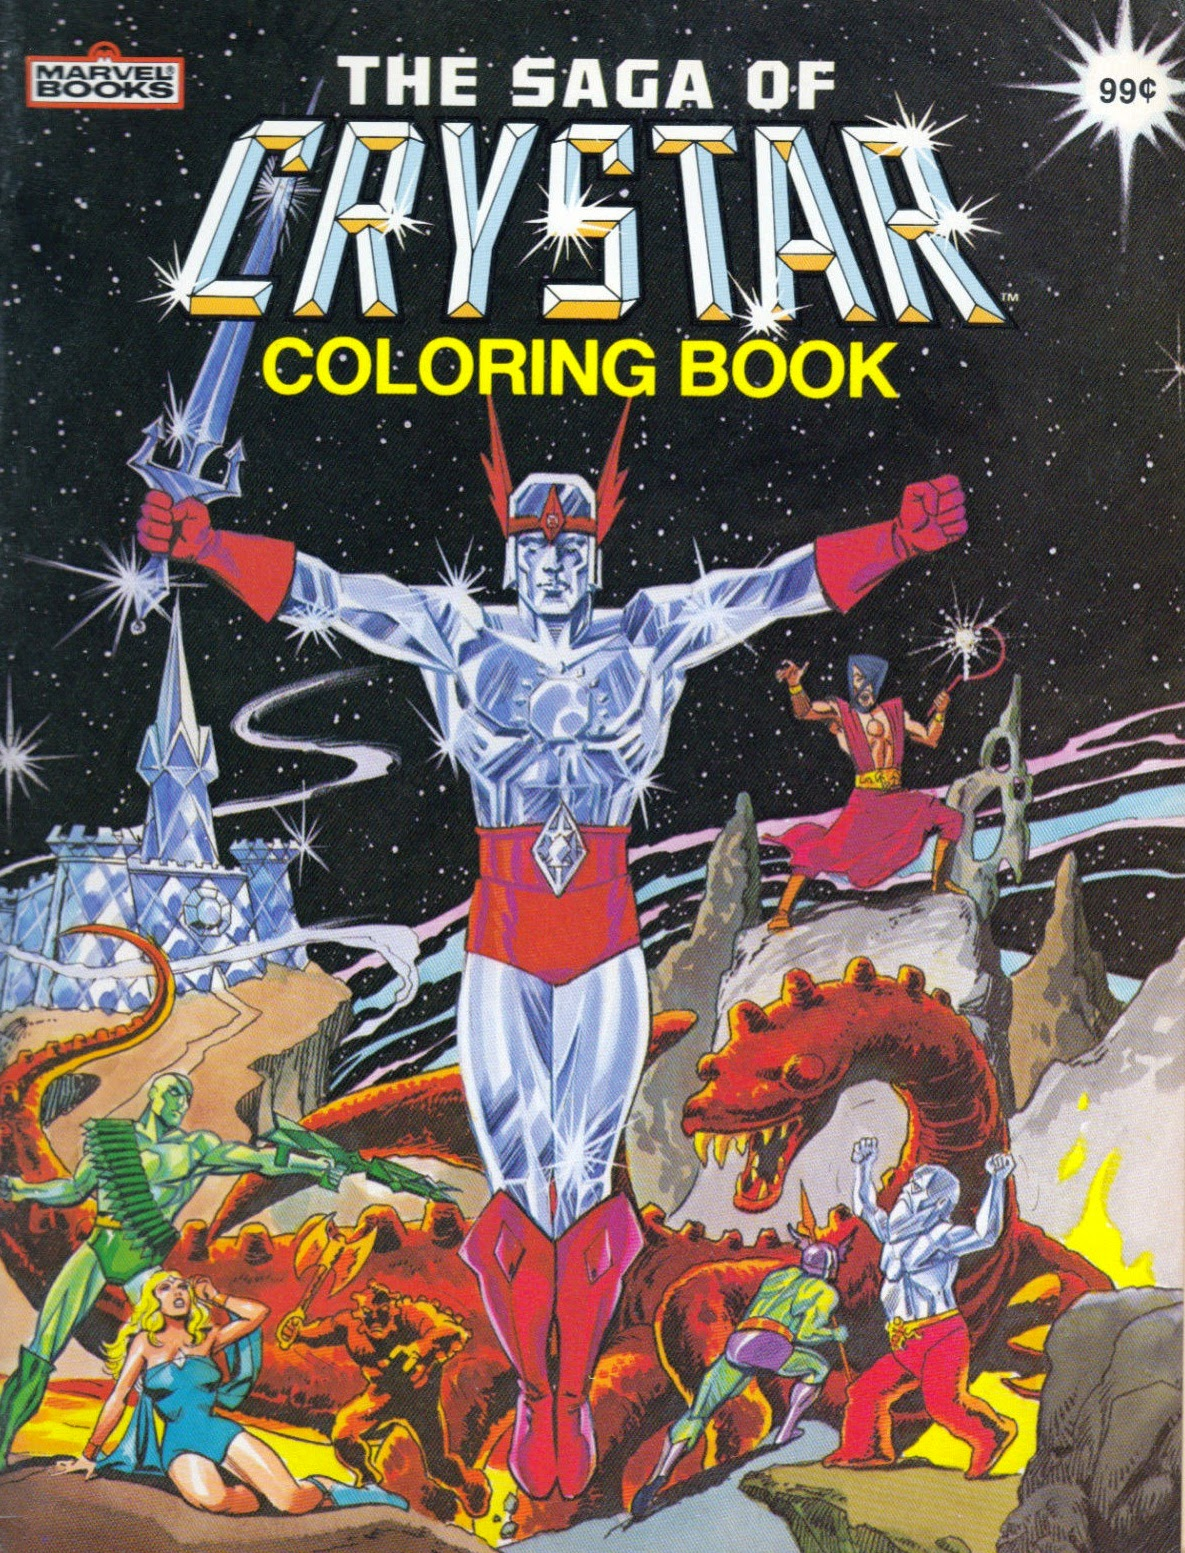 Marvel Comics of the 1980s: 1983 - The Saga of Crystar Coloring Books